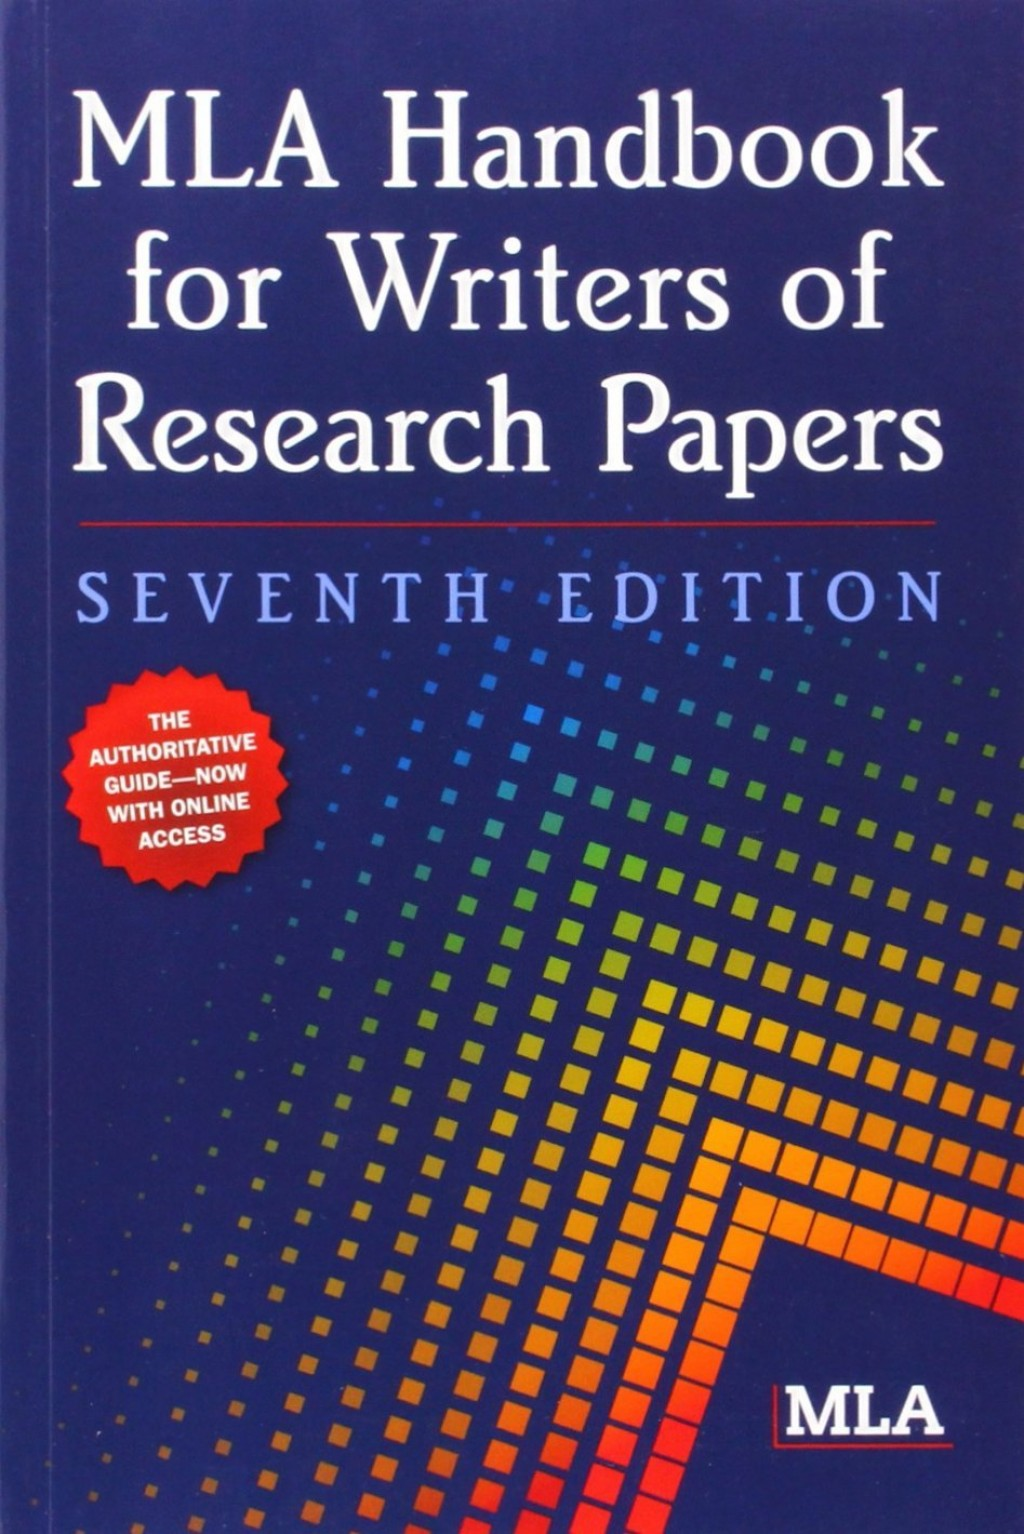 001 Mla Handbook For Writers Of Research Papers 7th Edition Paper Fearsome Pdf Free 2009 Summary Large